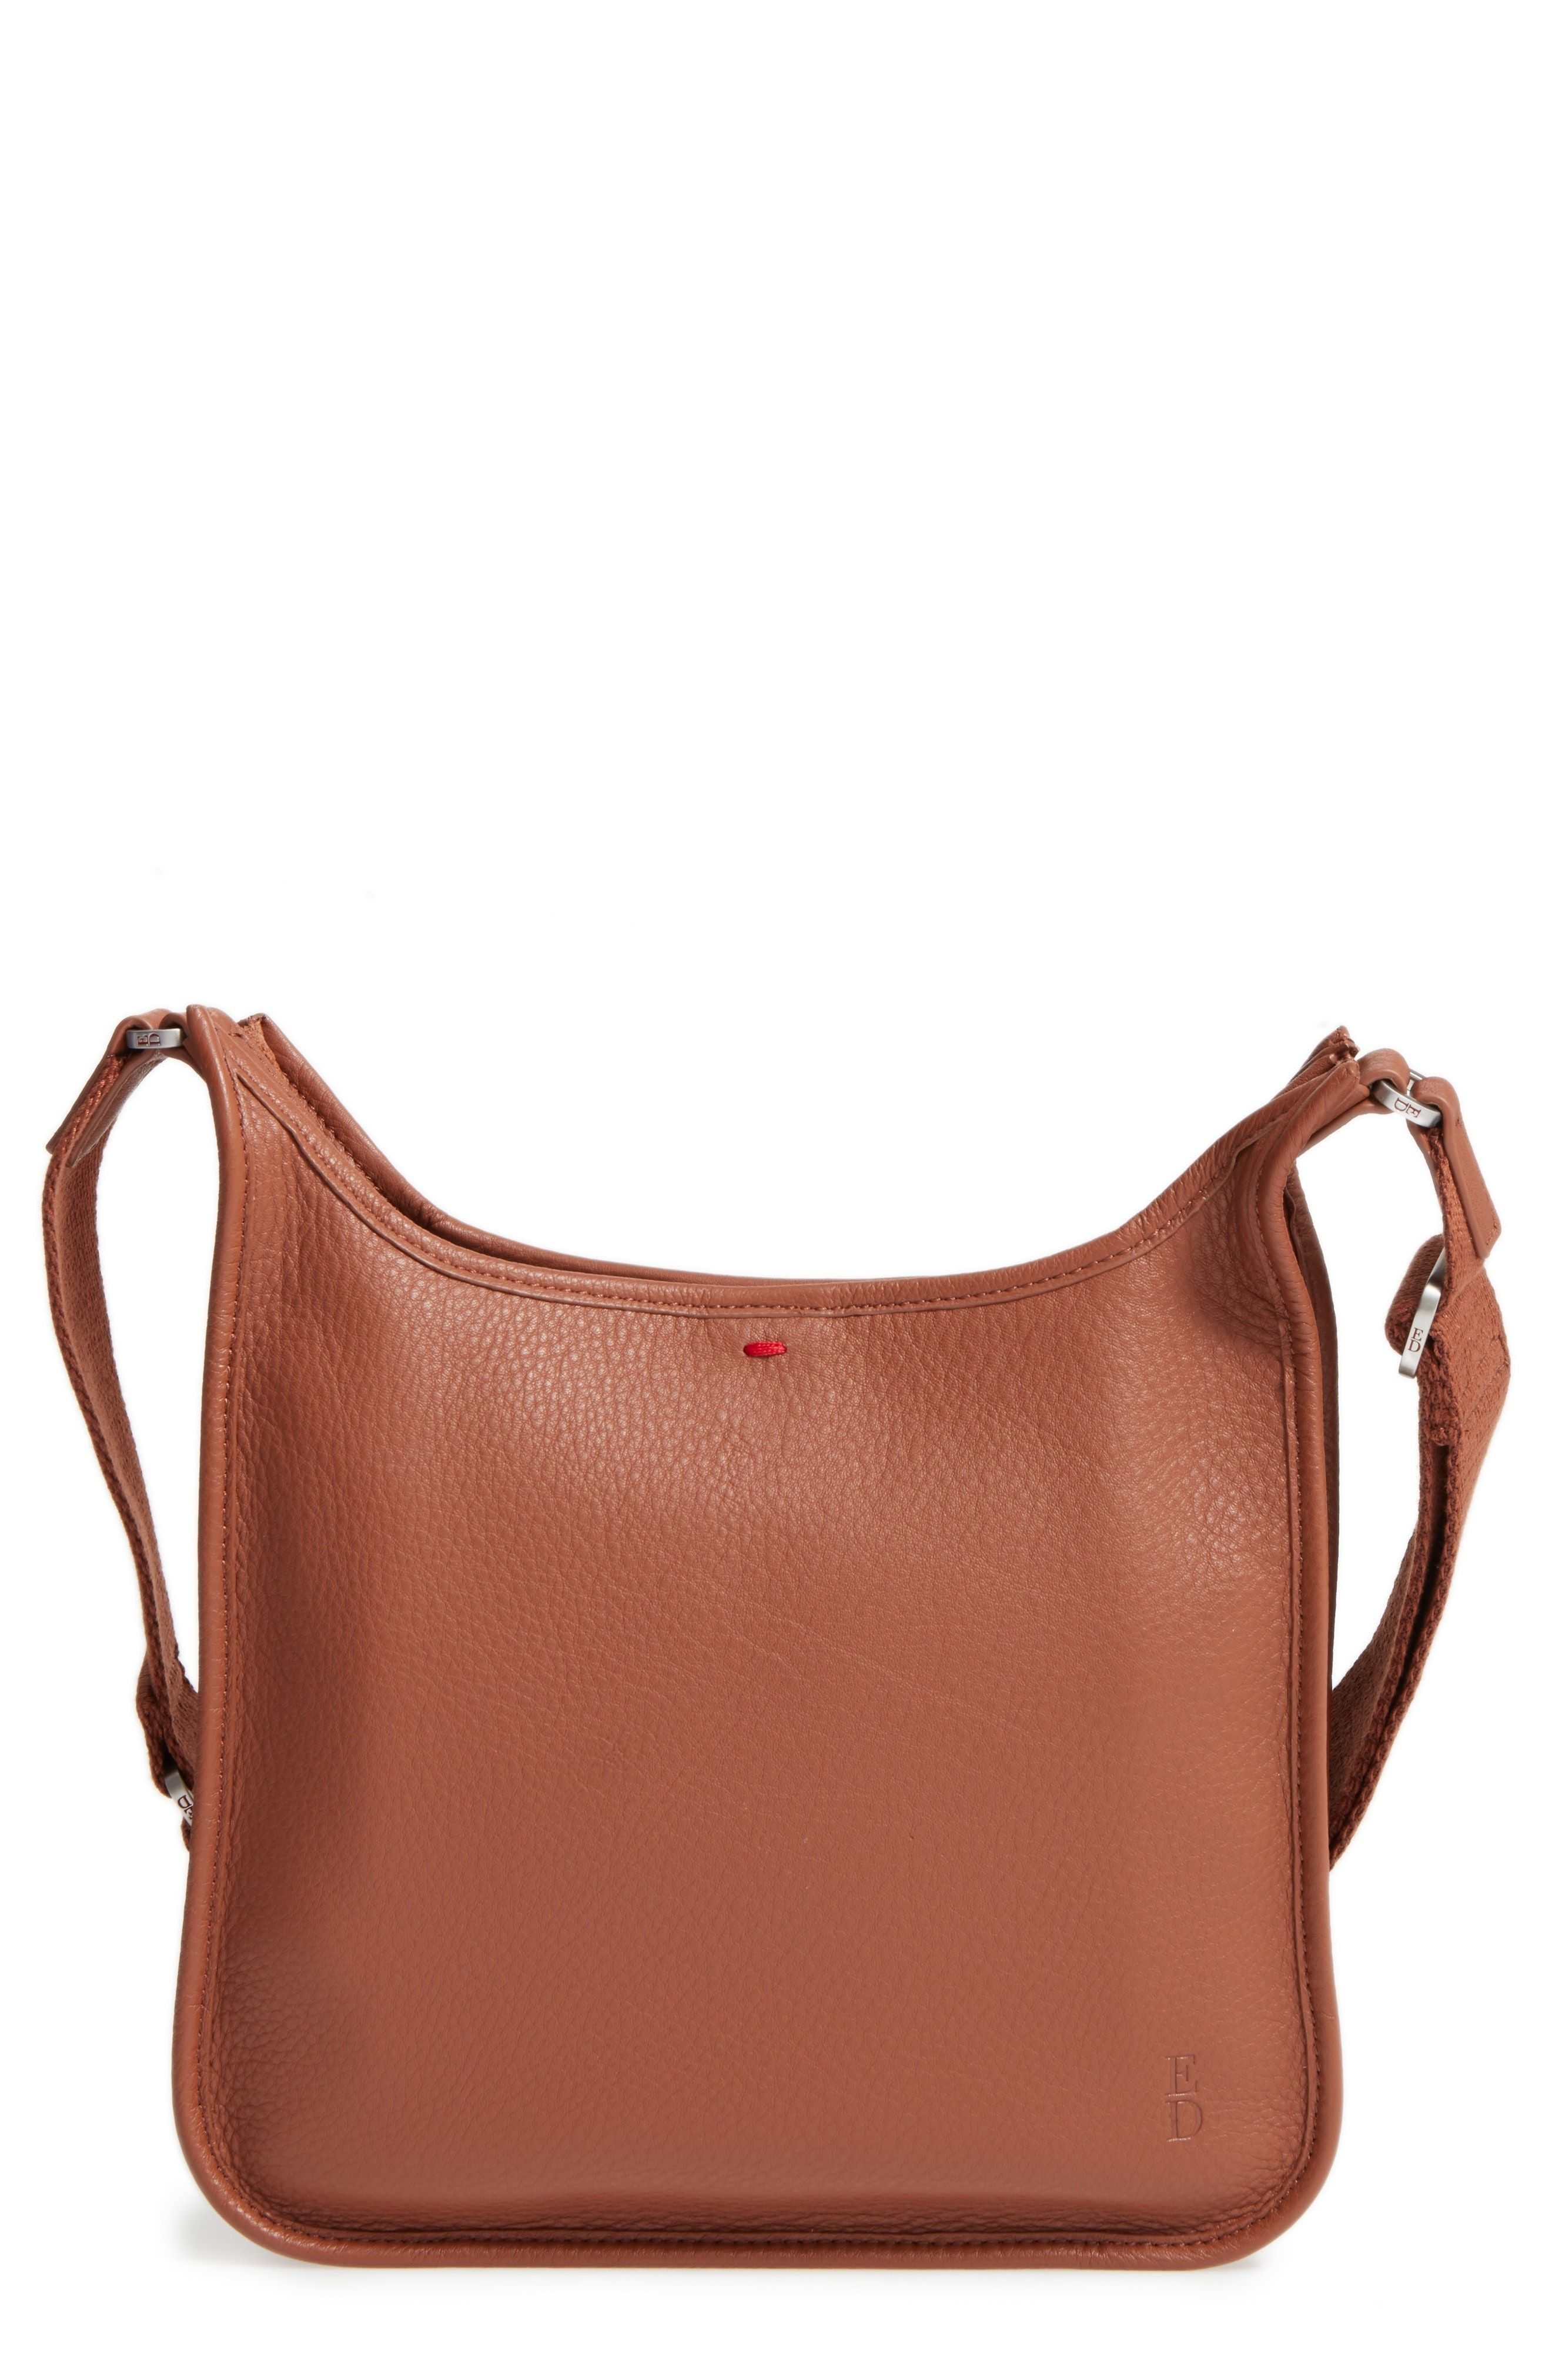 f5fe3e9e55a2 New ED Ellen DeGeneres Leather Crossbody Bag fashion online.    138   shop.seehandbags